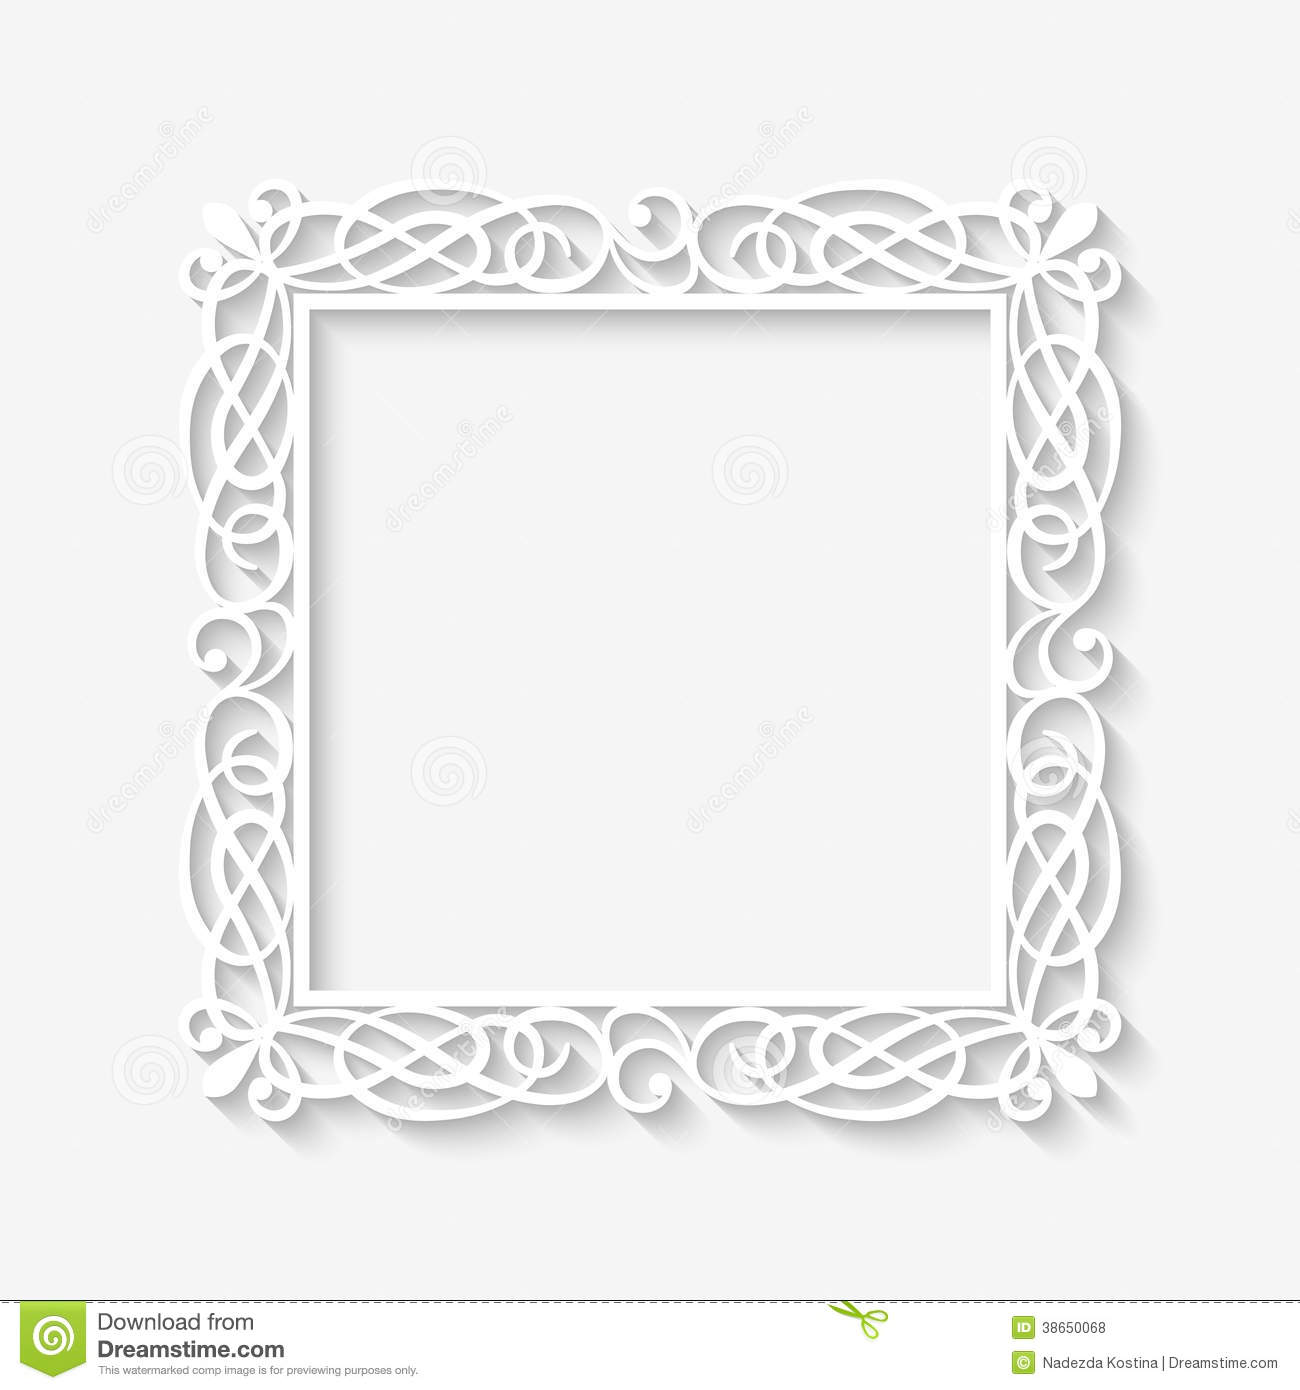 Vector Vintage White Frame Background Stock Vector - Illustration of ...